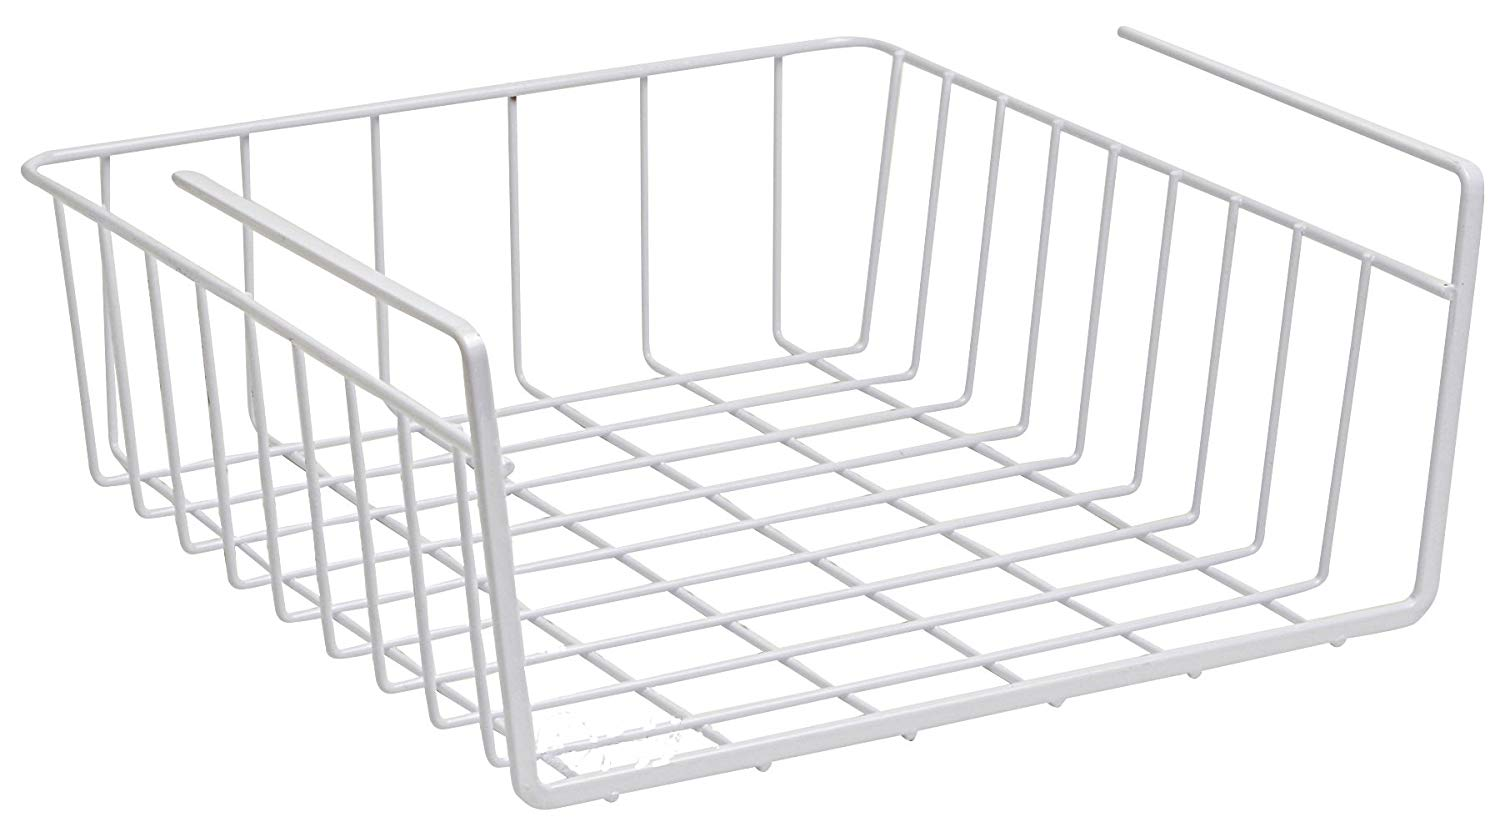 Under Shelf Basket Wire Rack - Easily Slides Under Shelves for Extra Cabinet Storage. Under shelf Baskets Allow You to Expand Pantry Space Without Adding Cabinets and Shelves. (Grayish White)